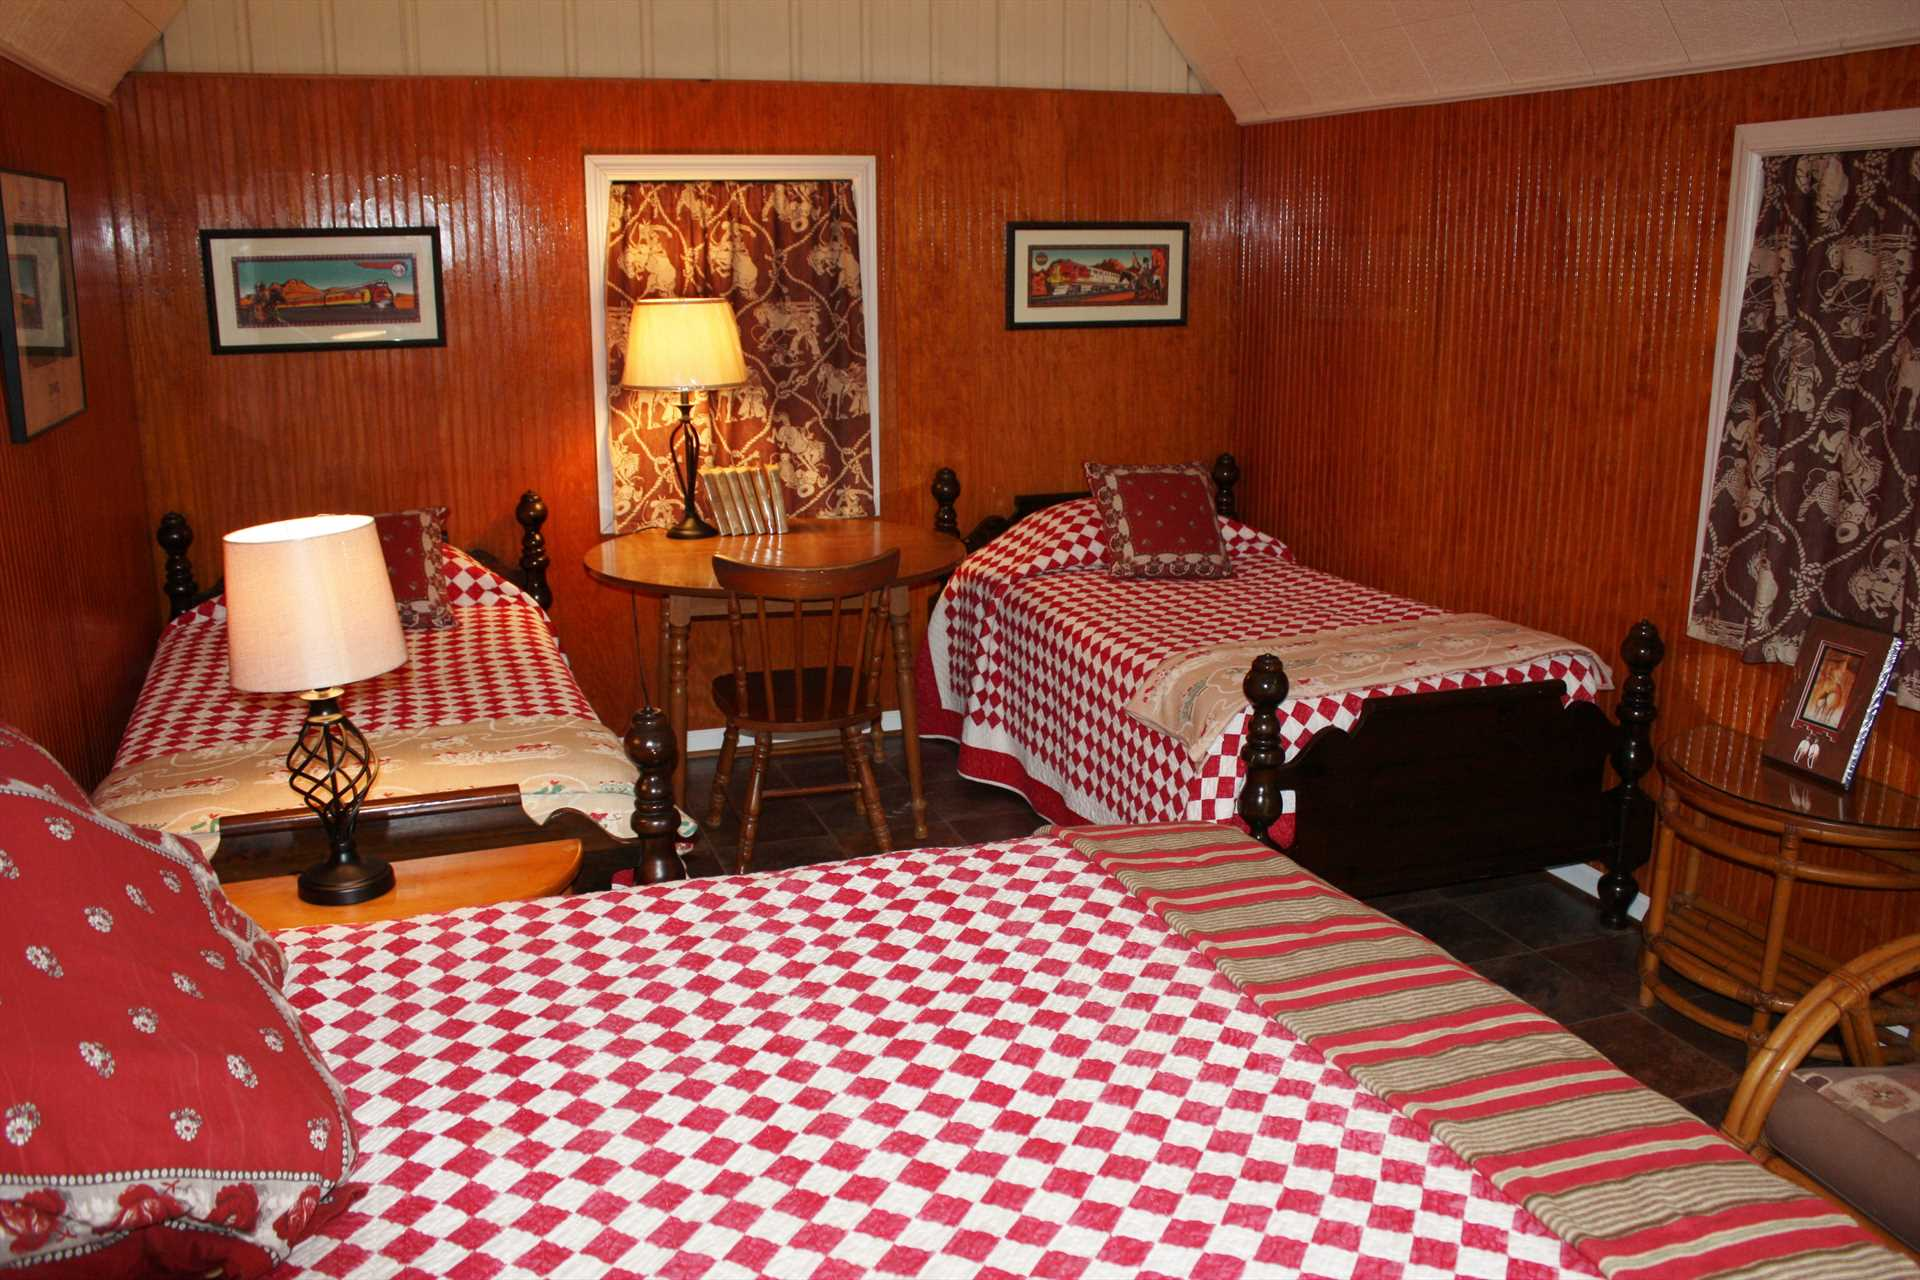 Comfort is assured in the cabin with window AC and heat, the main house is equipped with central AC and heat.